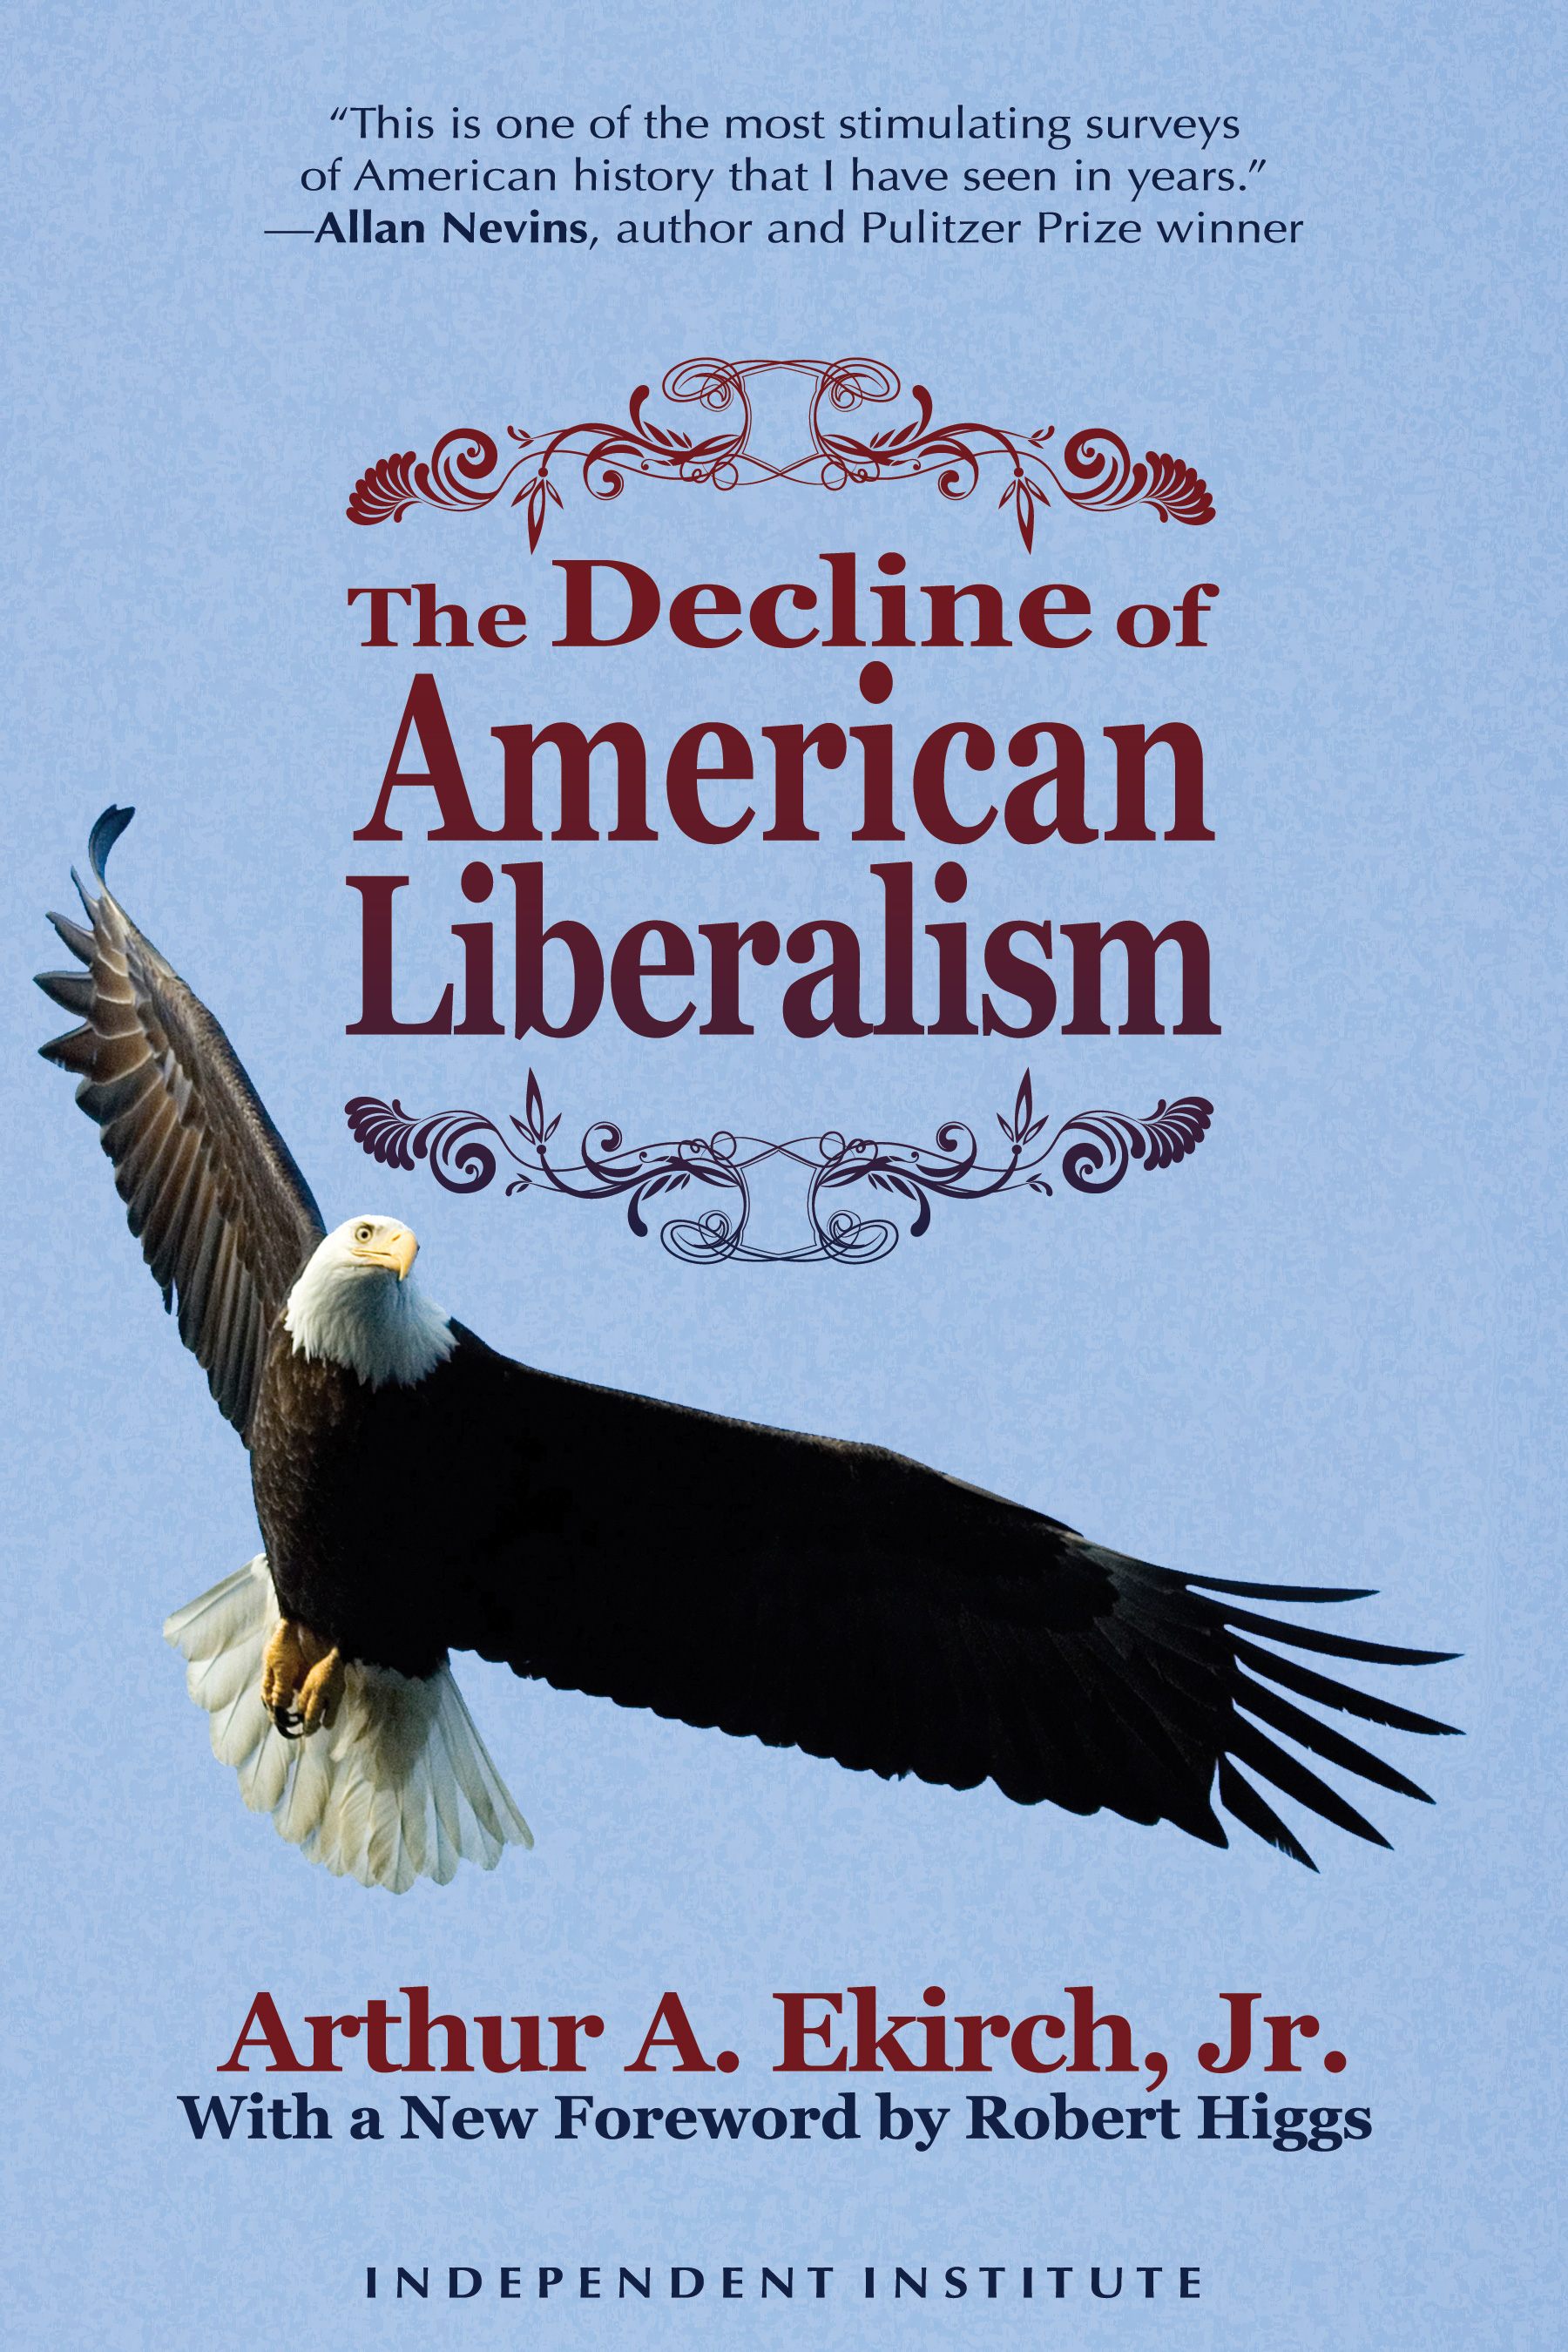 Image result for The American Eagle on the decline